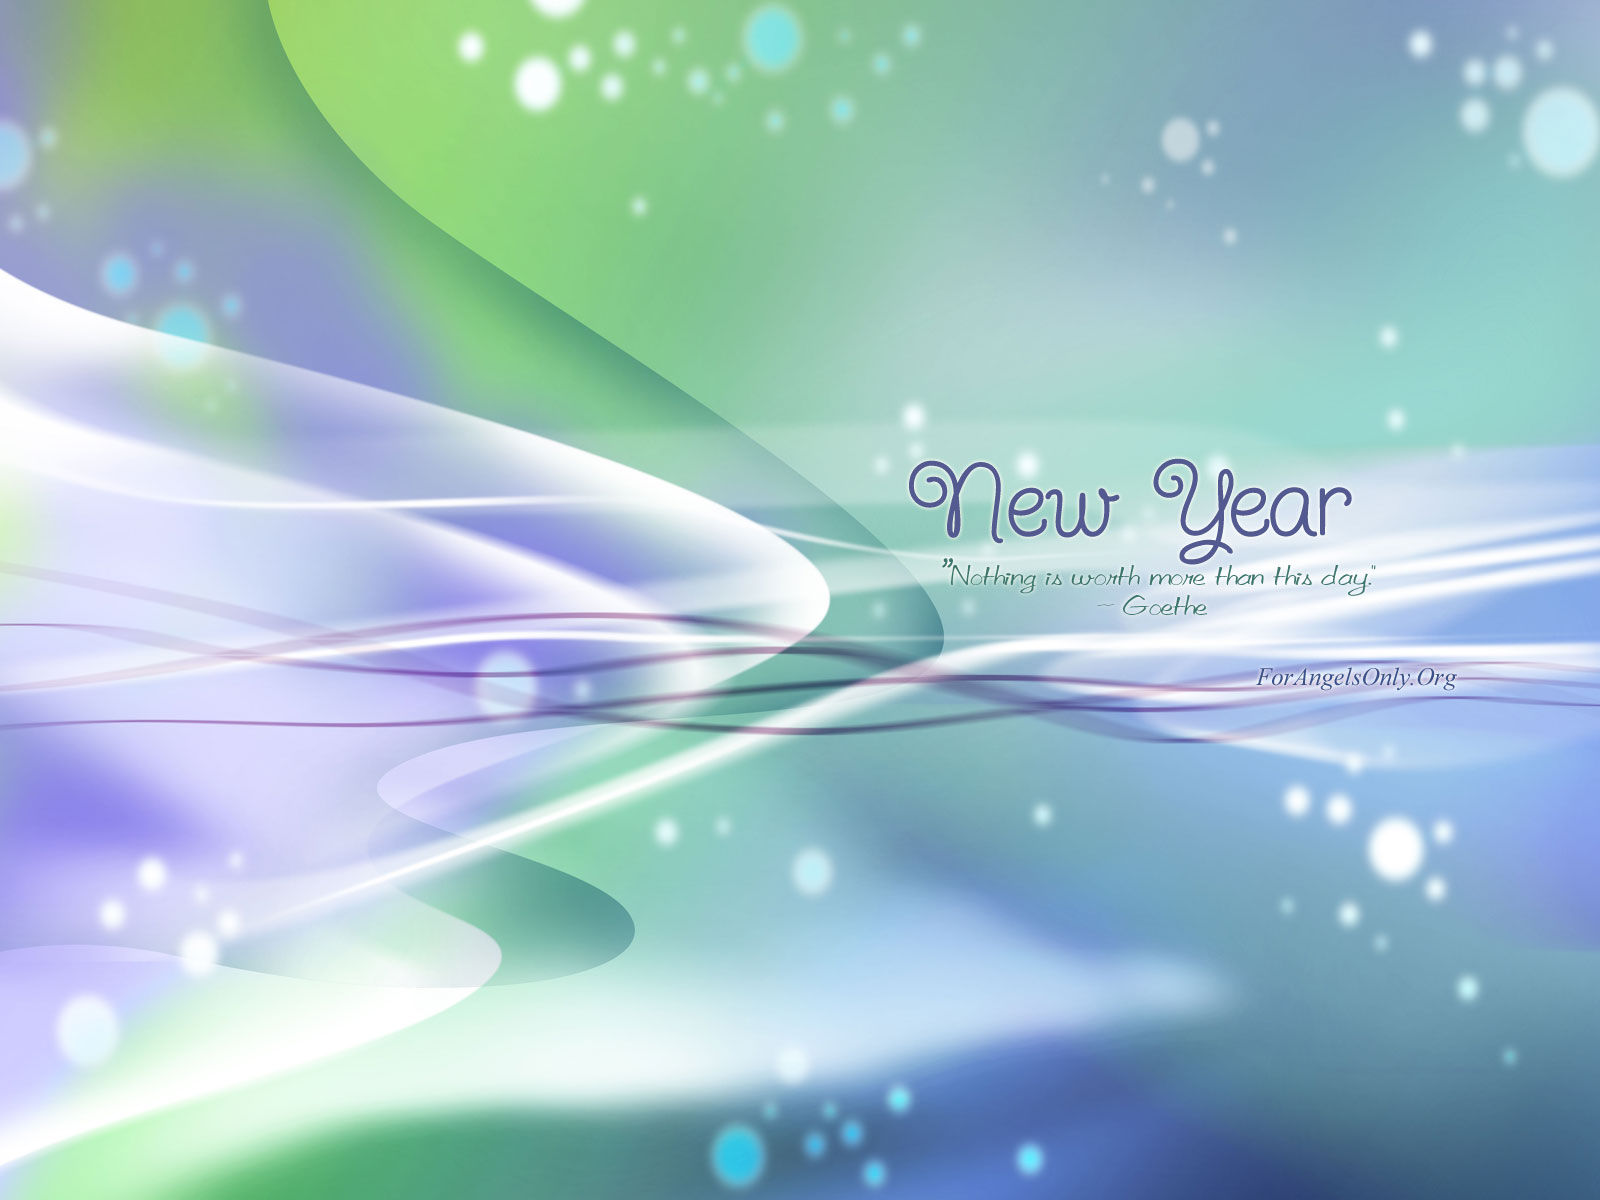 Happy New Year Images Jpegs New Calendar Template Site 1600x1200